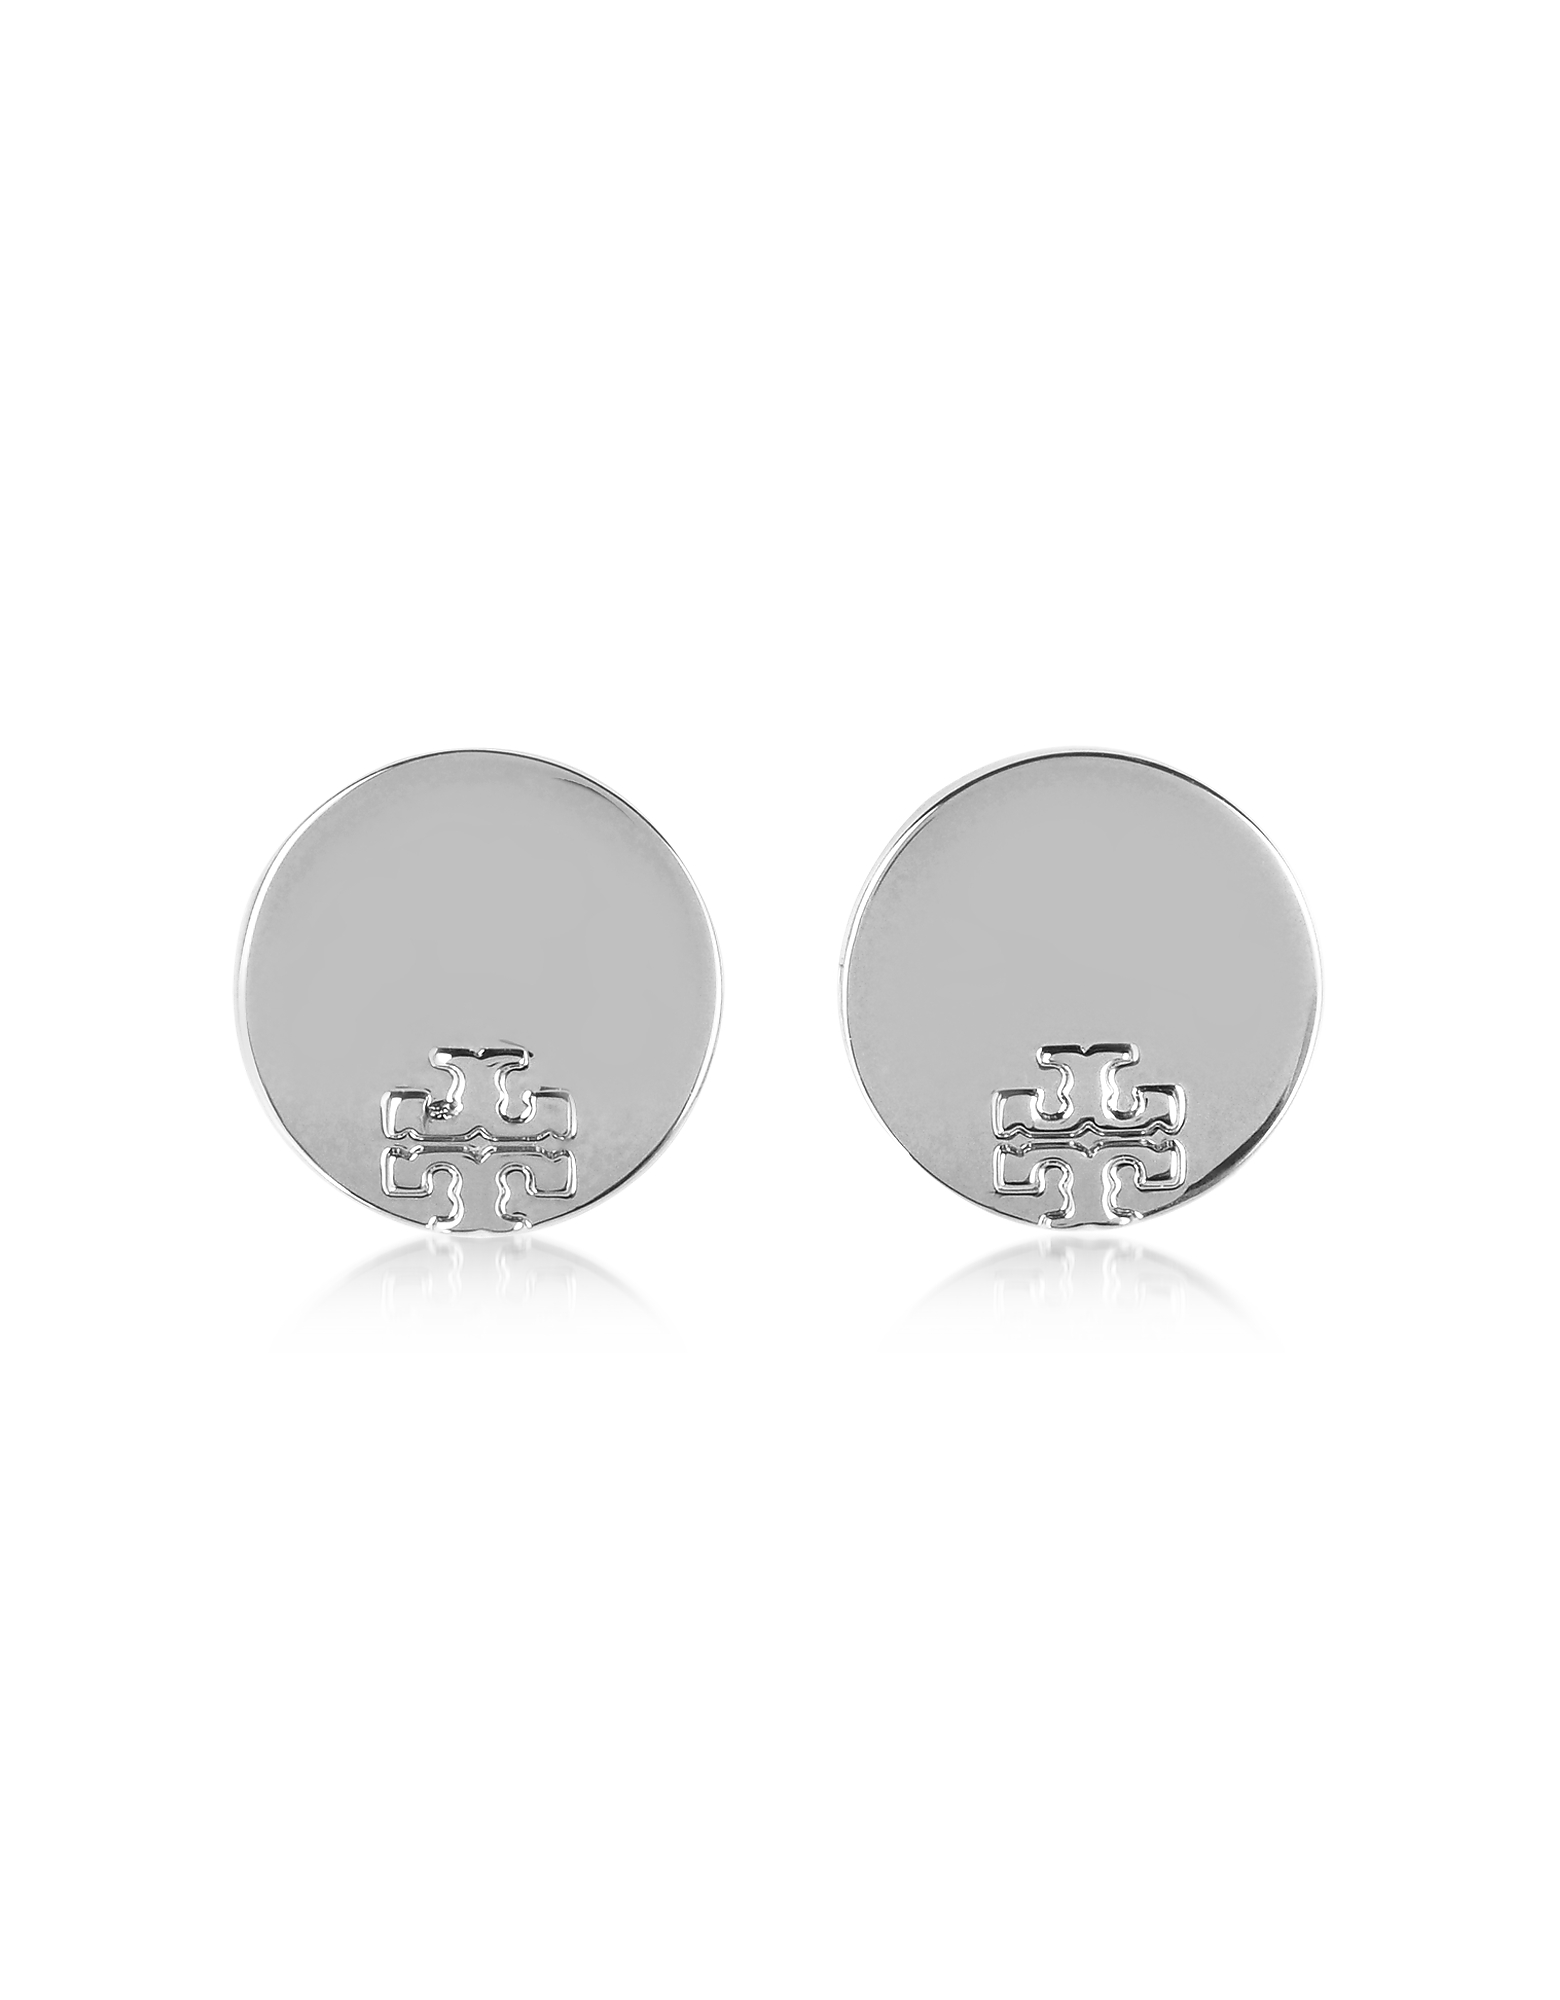 Tory Burch Designer Earrings, Kira Stud Earrings